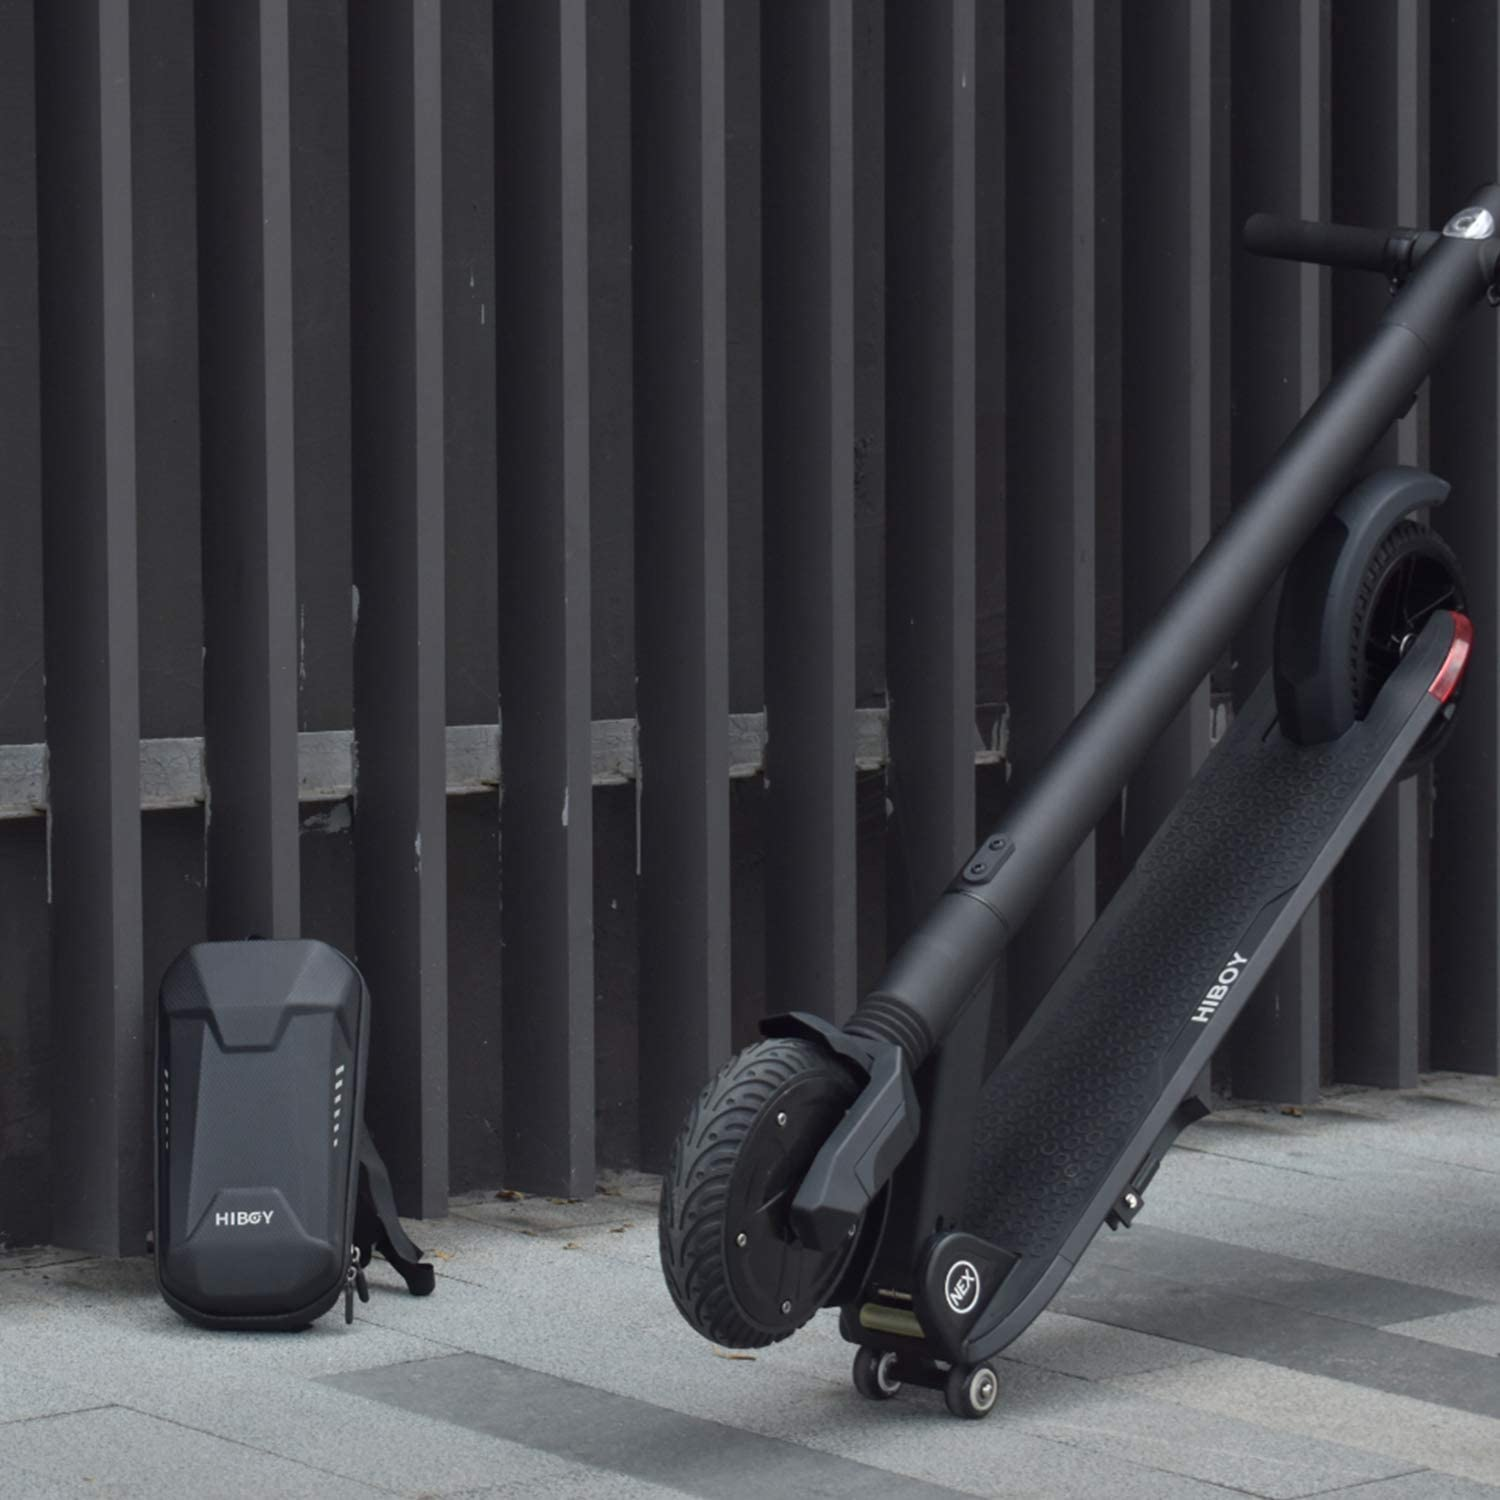 Hiboy Waterproof Scooter Storage Bag